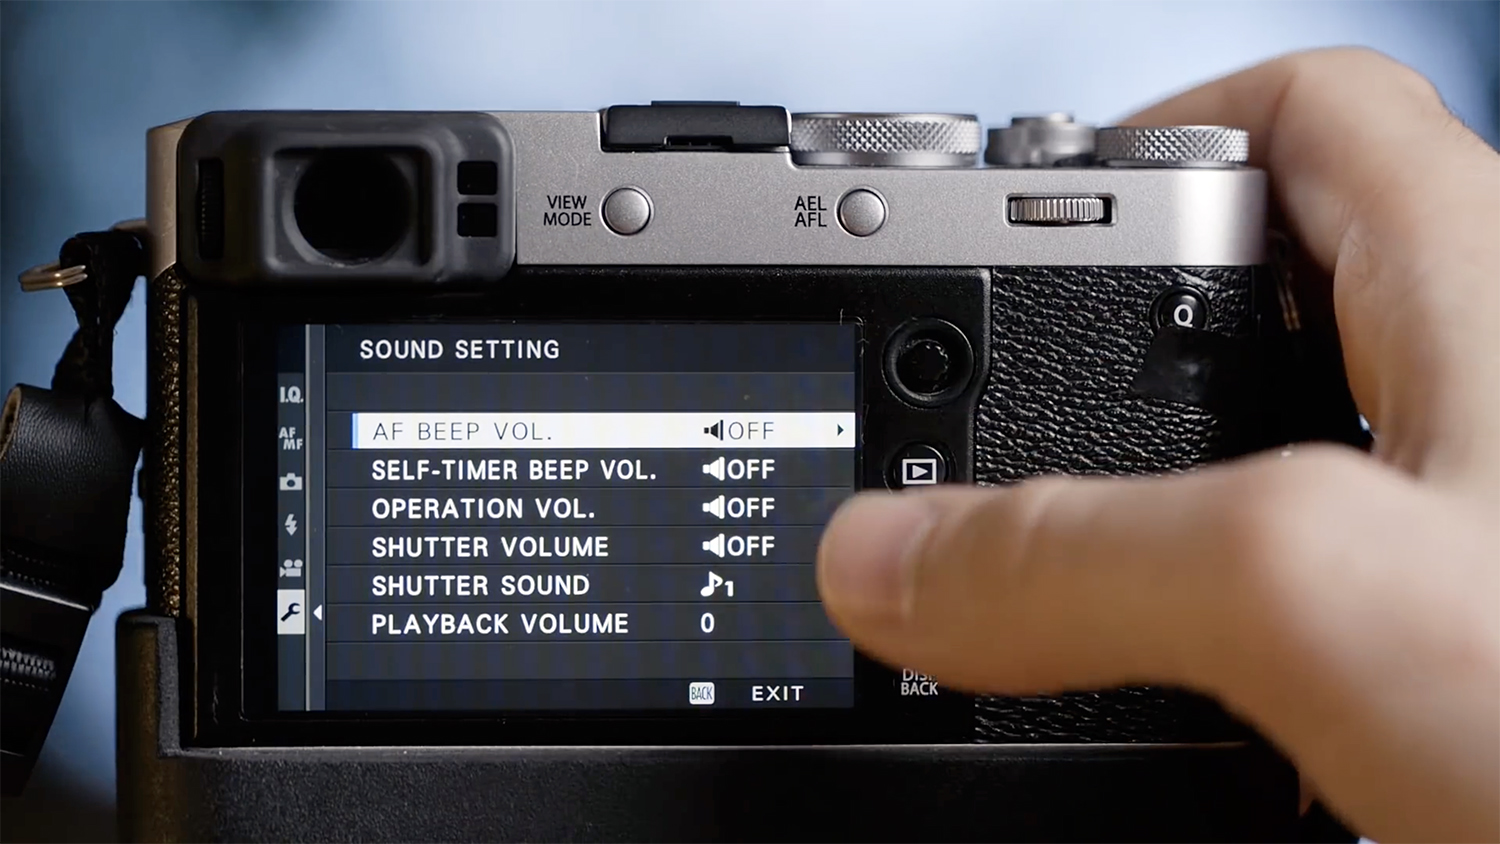 Fujifilm X100F and the settings for Street Photography